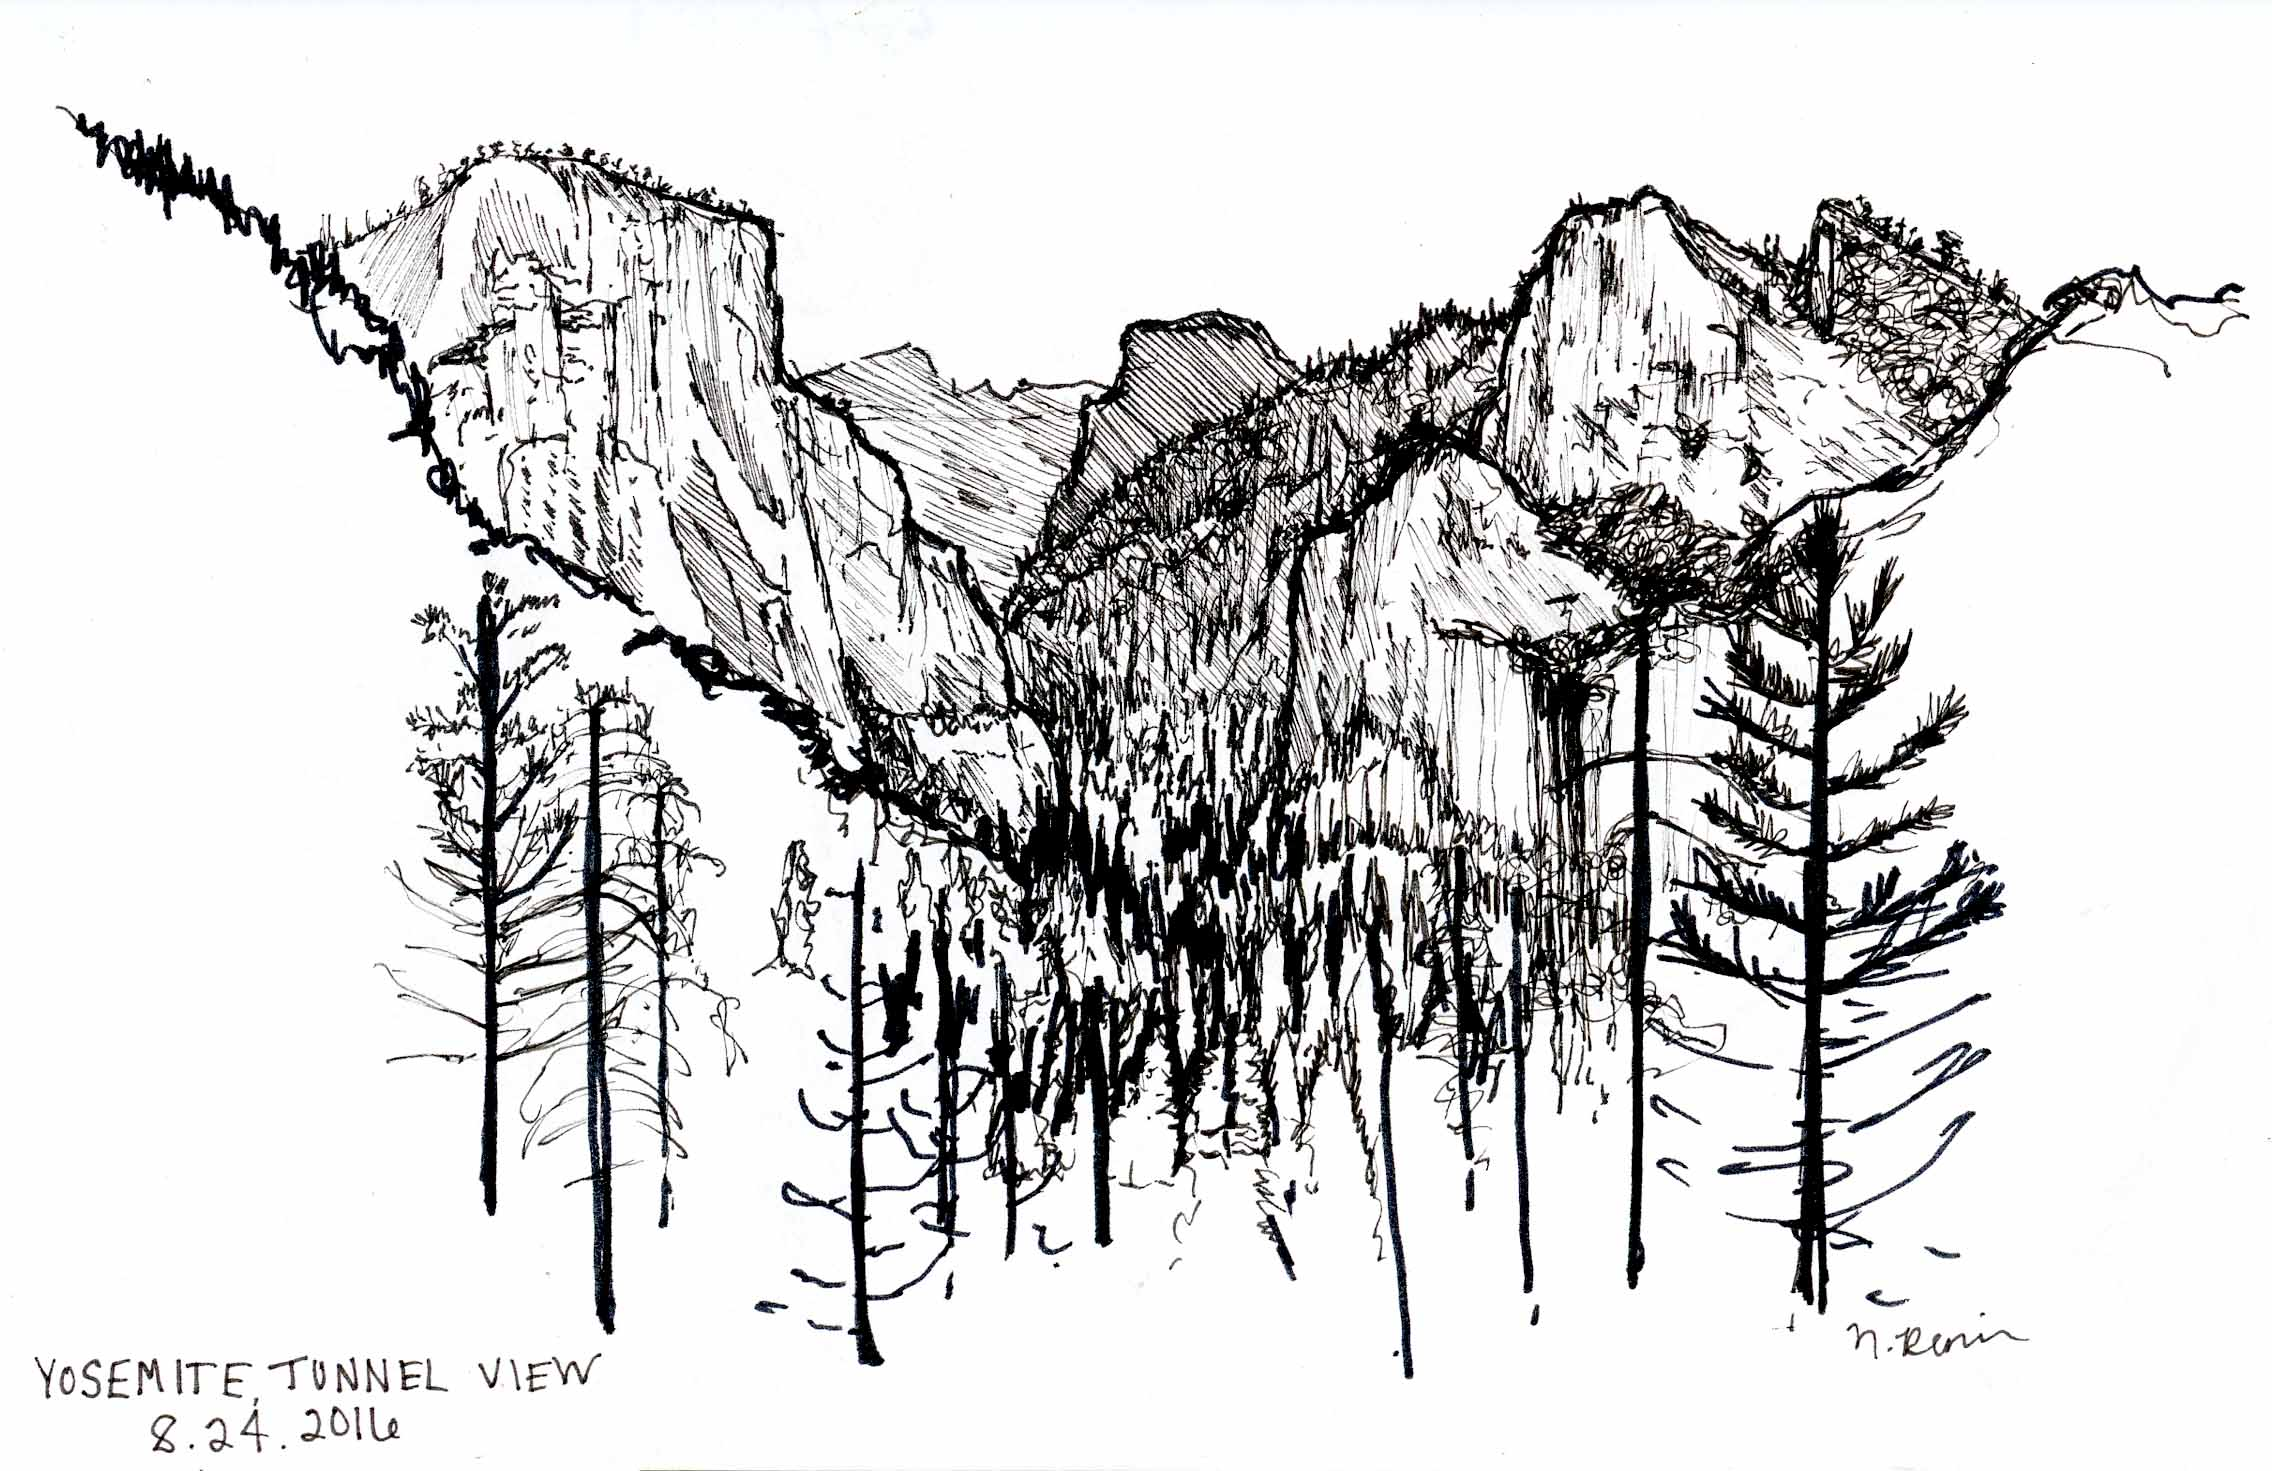 Yosemite Tunnel View Sketch at Sunrise